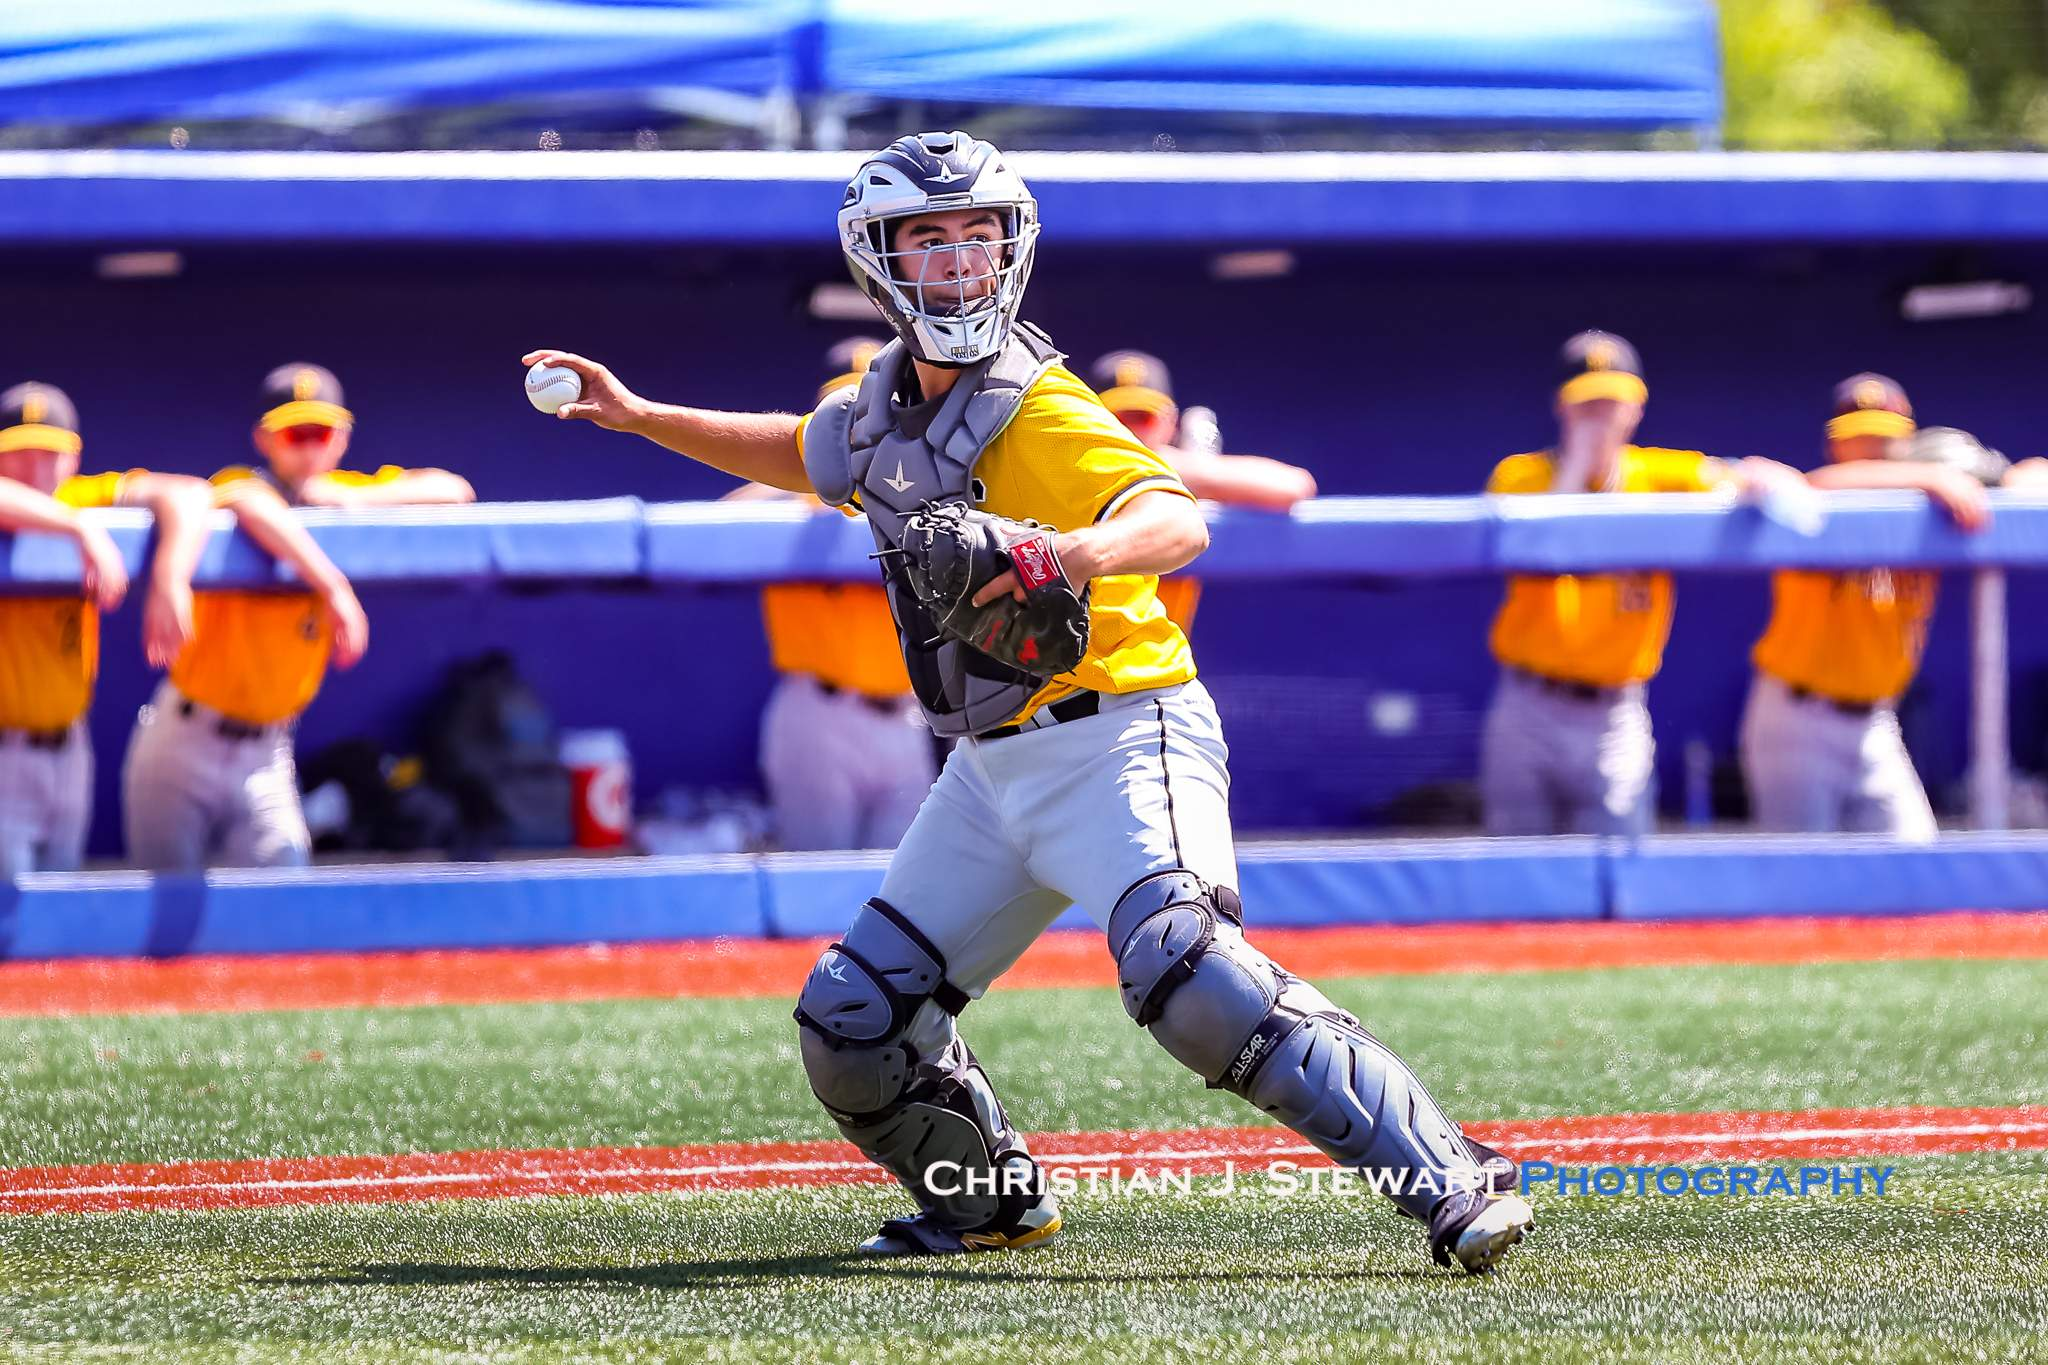 Mid-Island catcher Matthew Simpson gets set to throw to first in the semi-final Sunday (Photo: Christian J. Stewart)